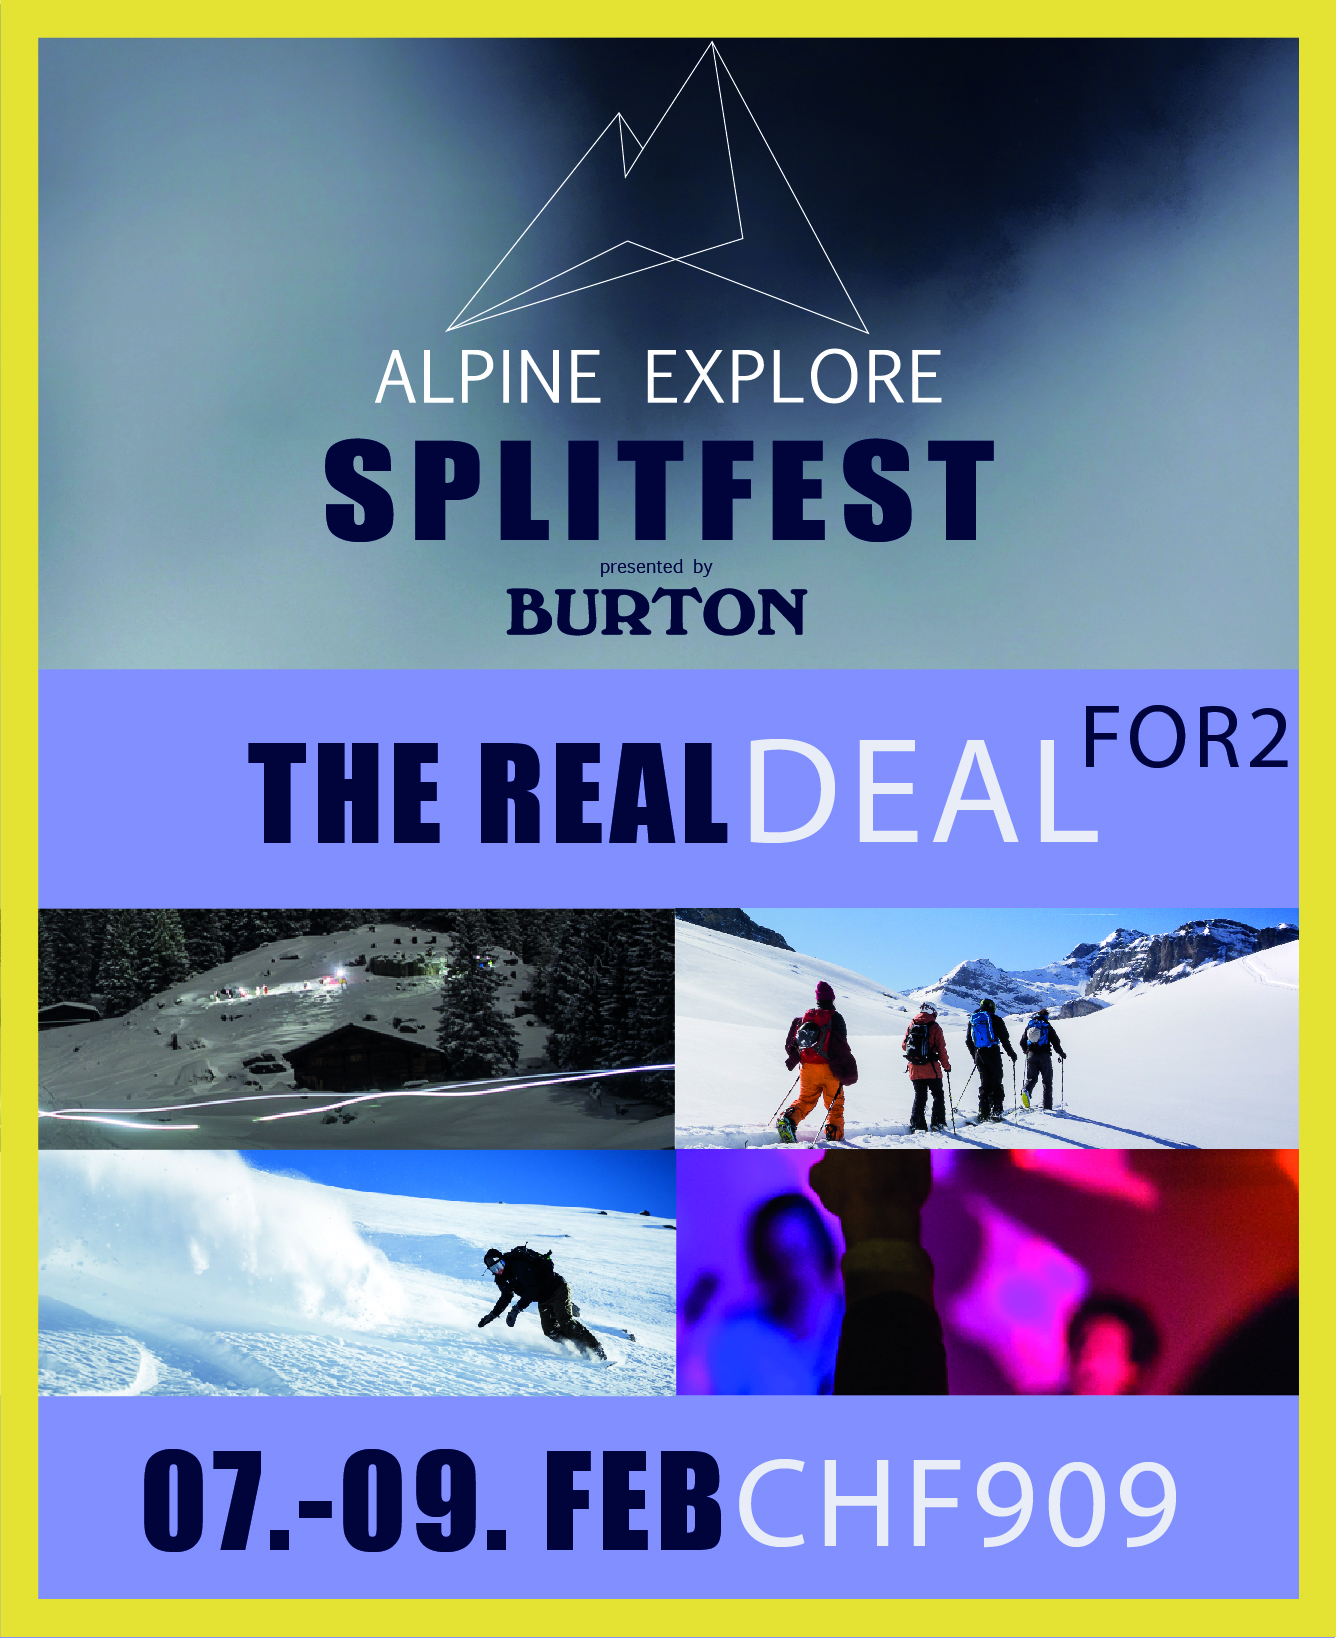 The Real Deal FOR2 - Alpine Explore Splitfest 2020 004